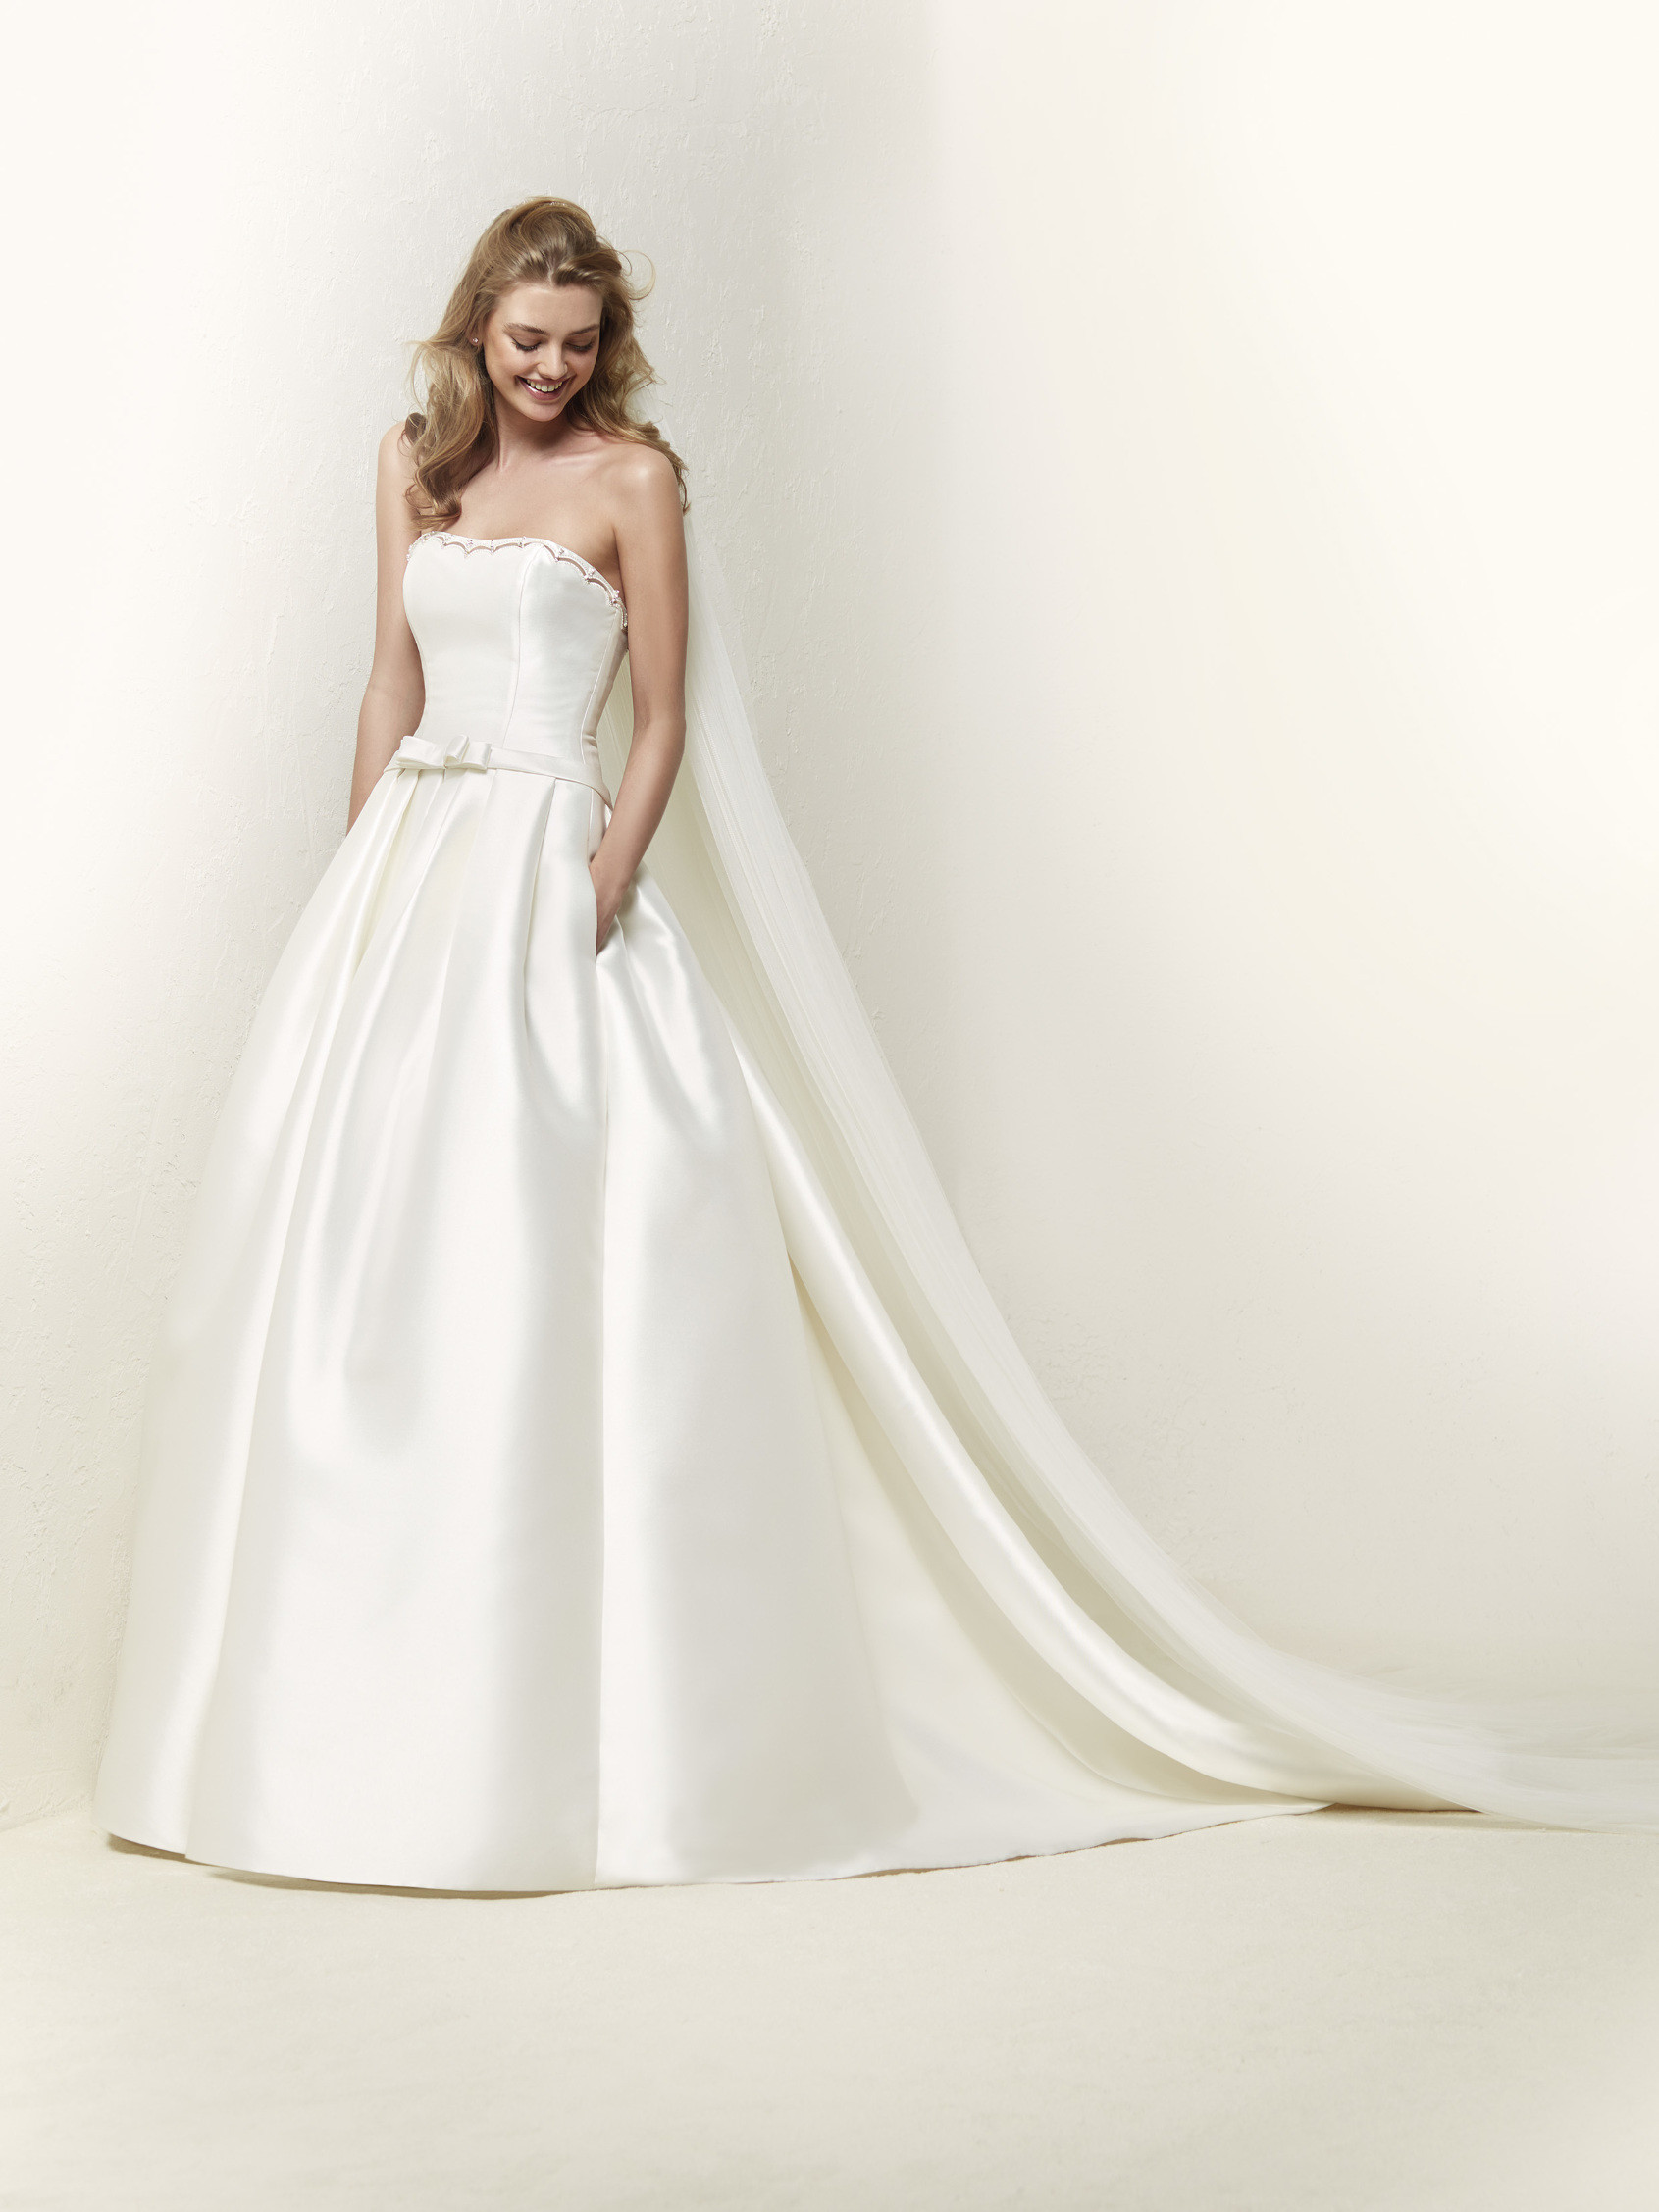 Houston Bridal Dresses - Parvani Vida Bridal and Formal